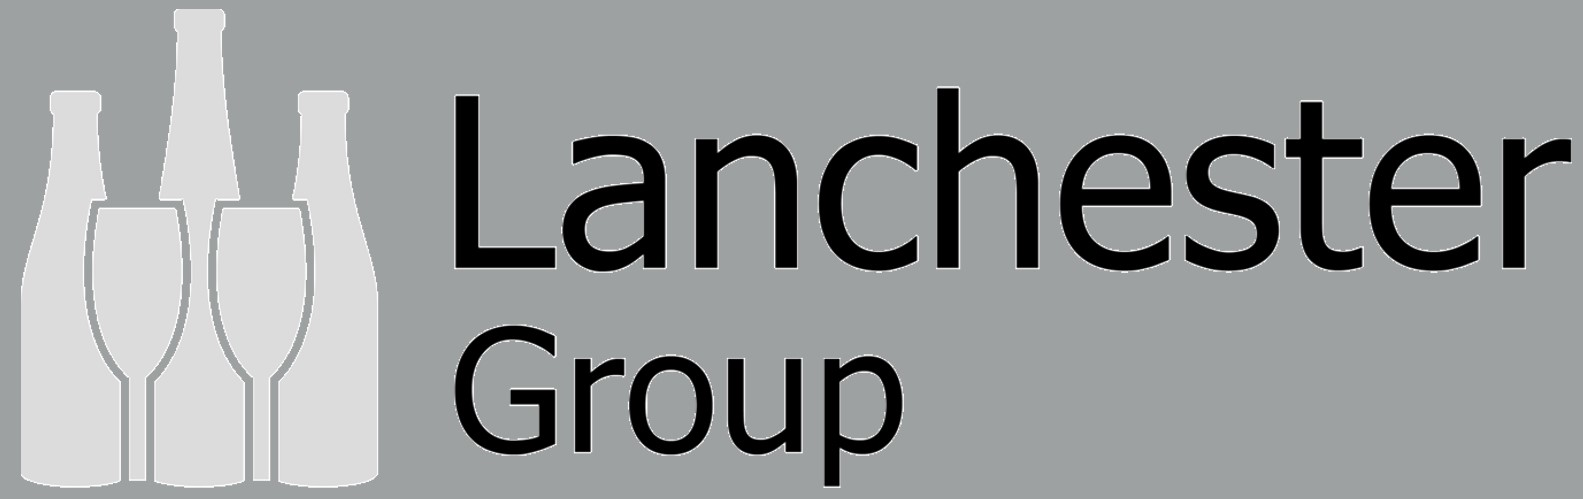 Image: Lanchester Group